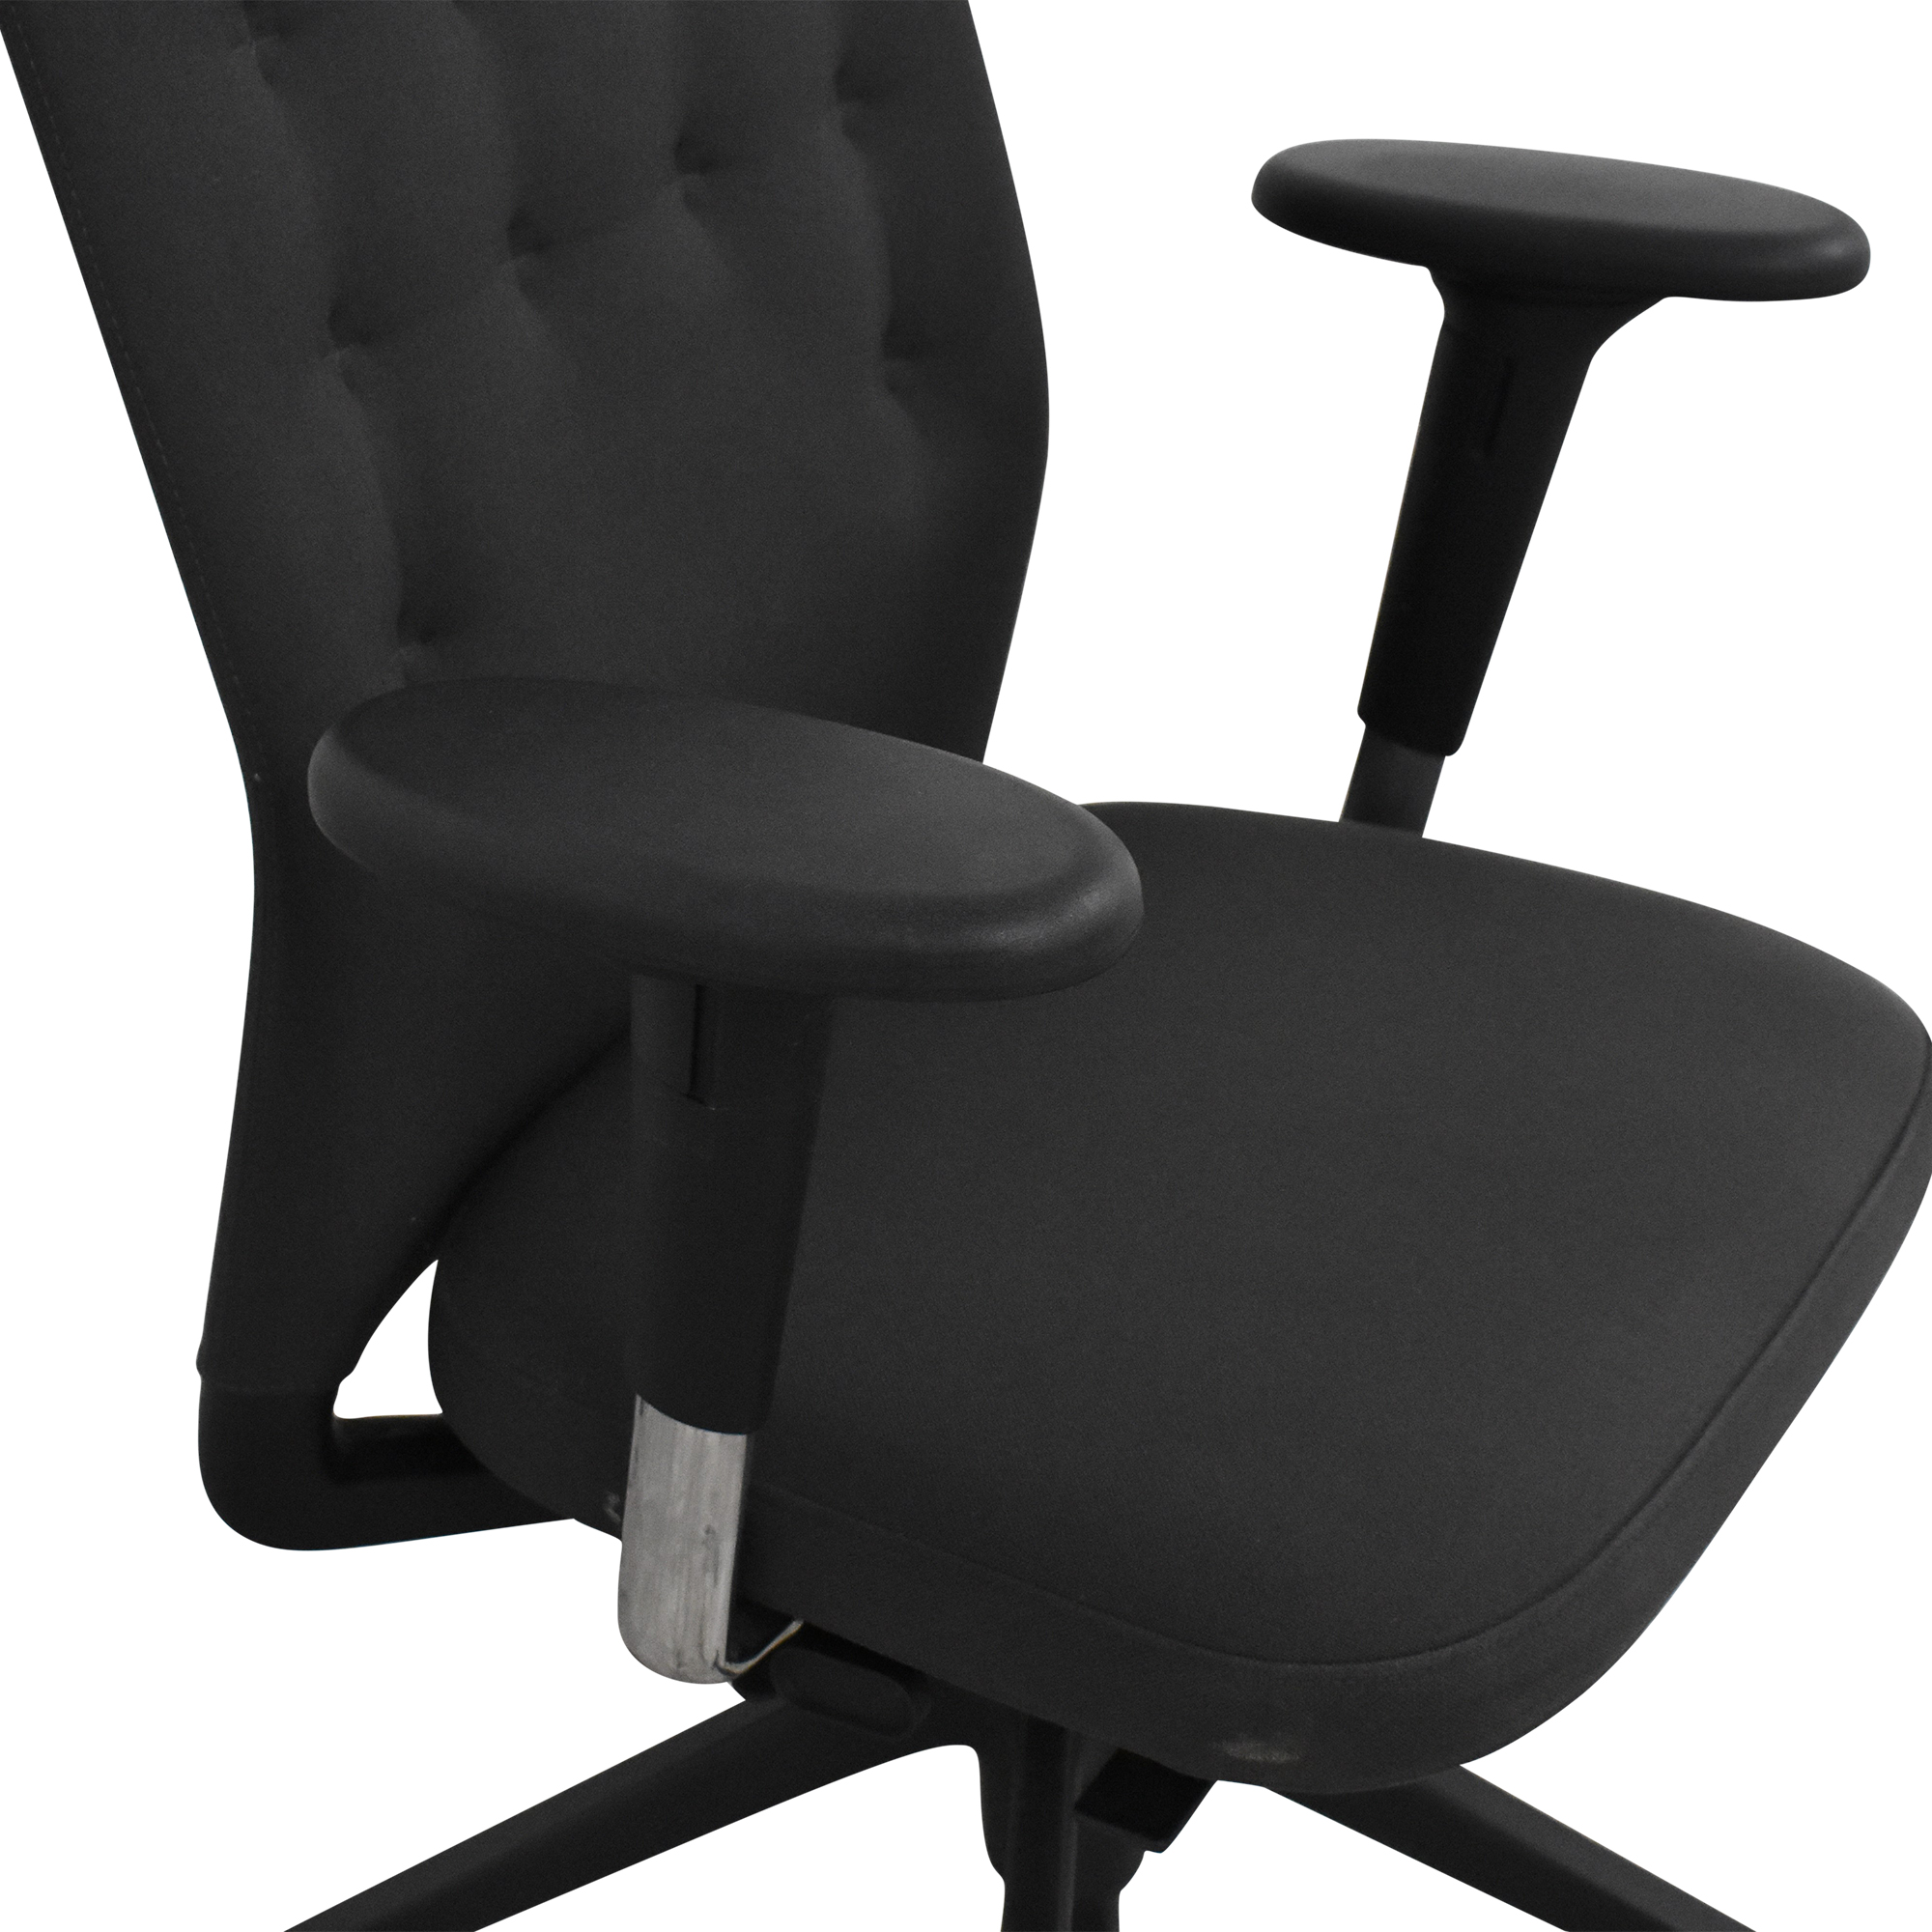 45 Off Vitra Vitra Id Trim Office Chair Chairs